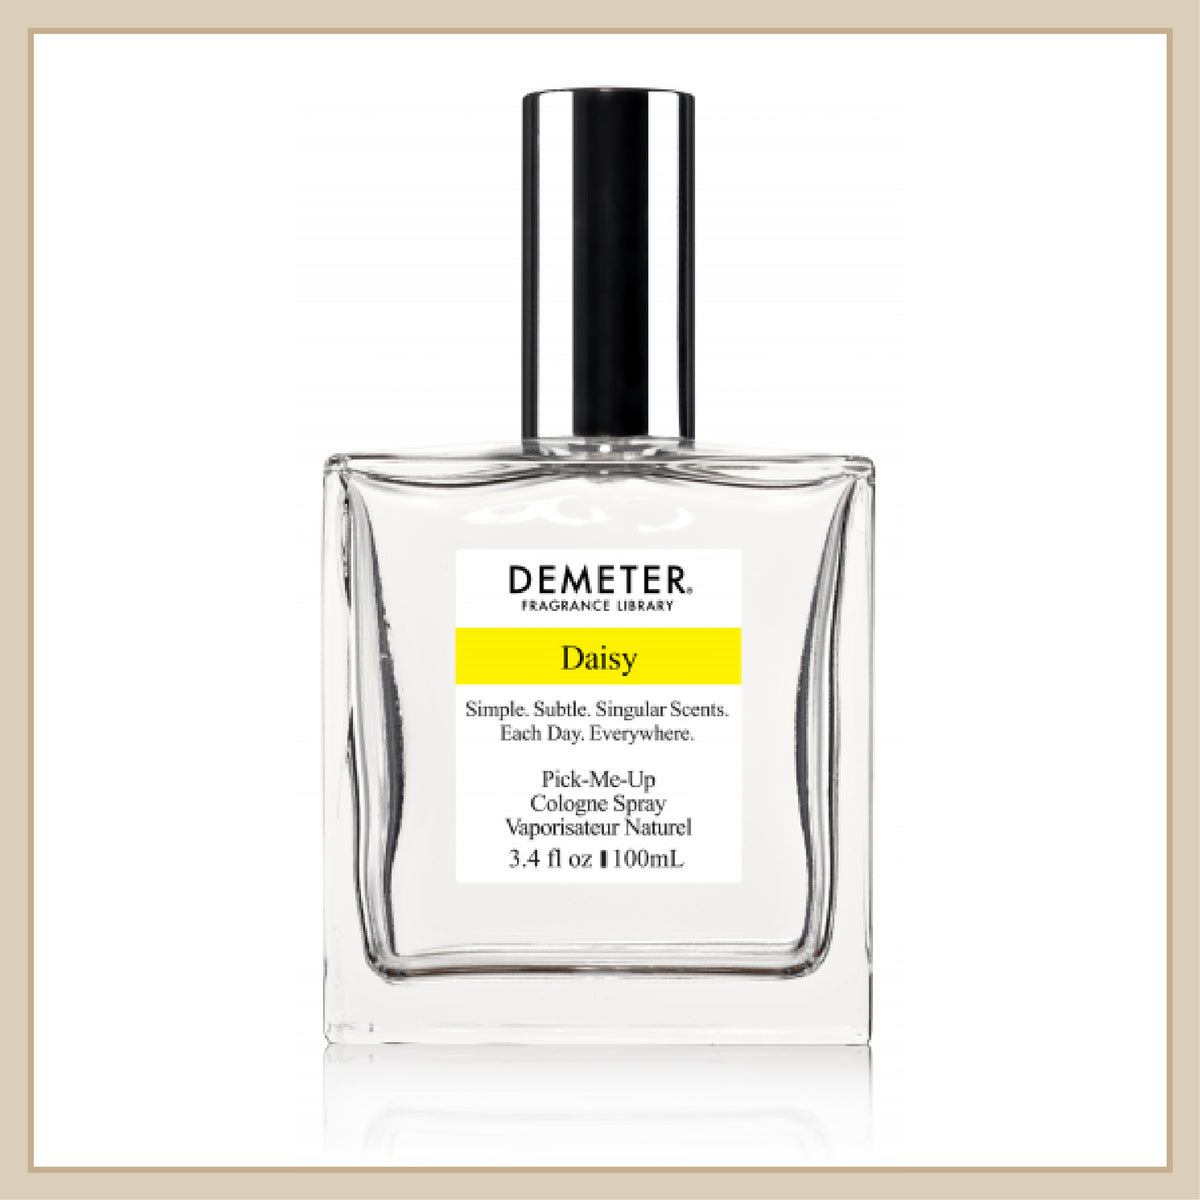 Demeter Fragrance – Daisy - Envy Paint and Design